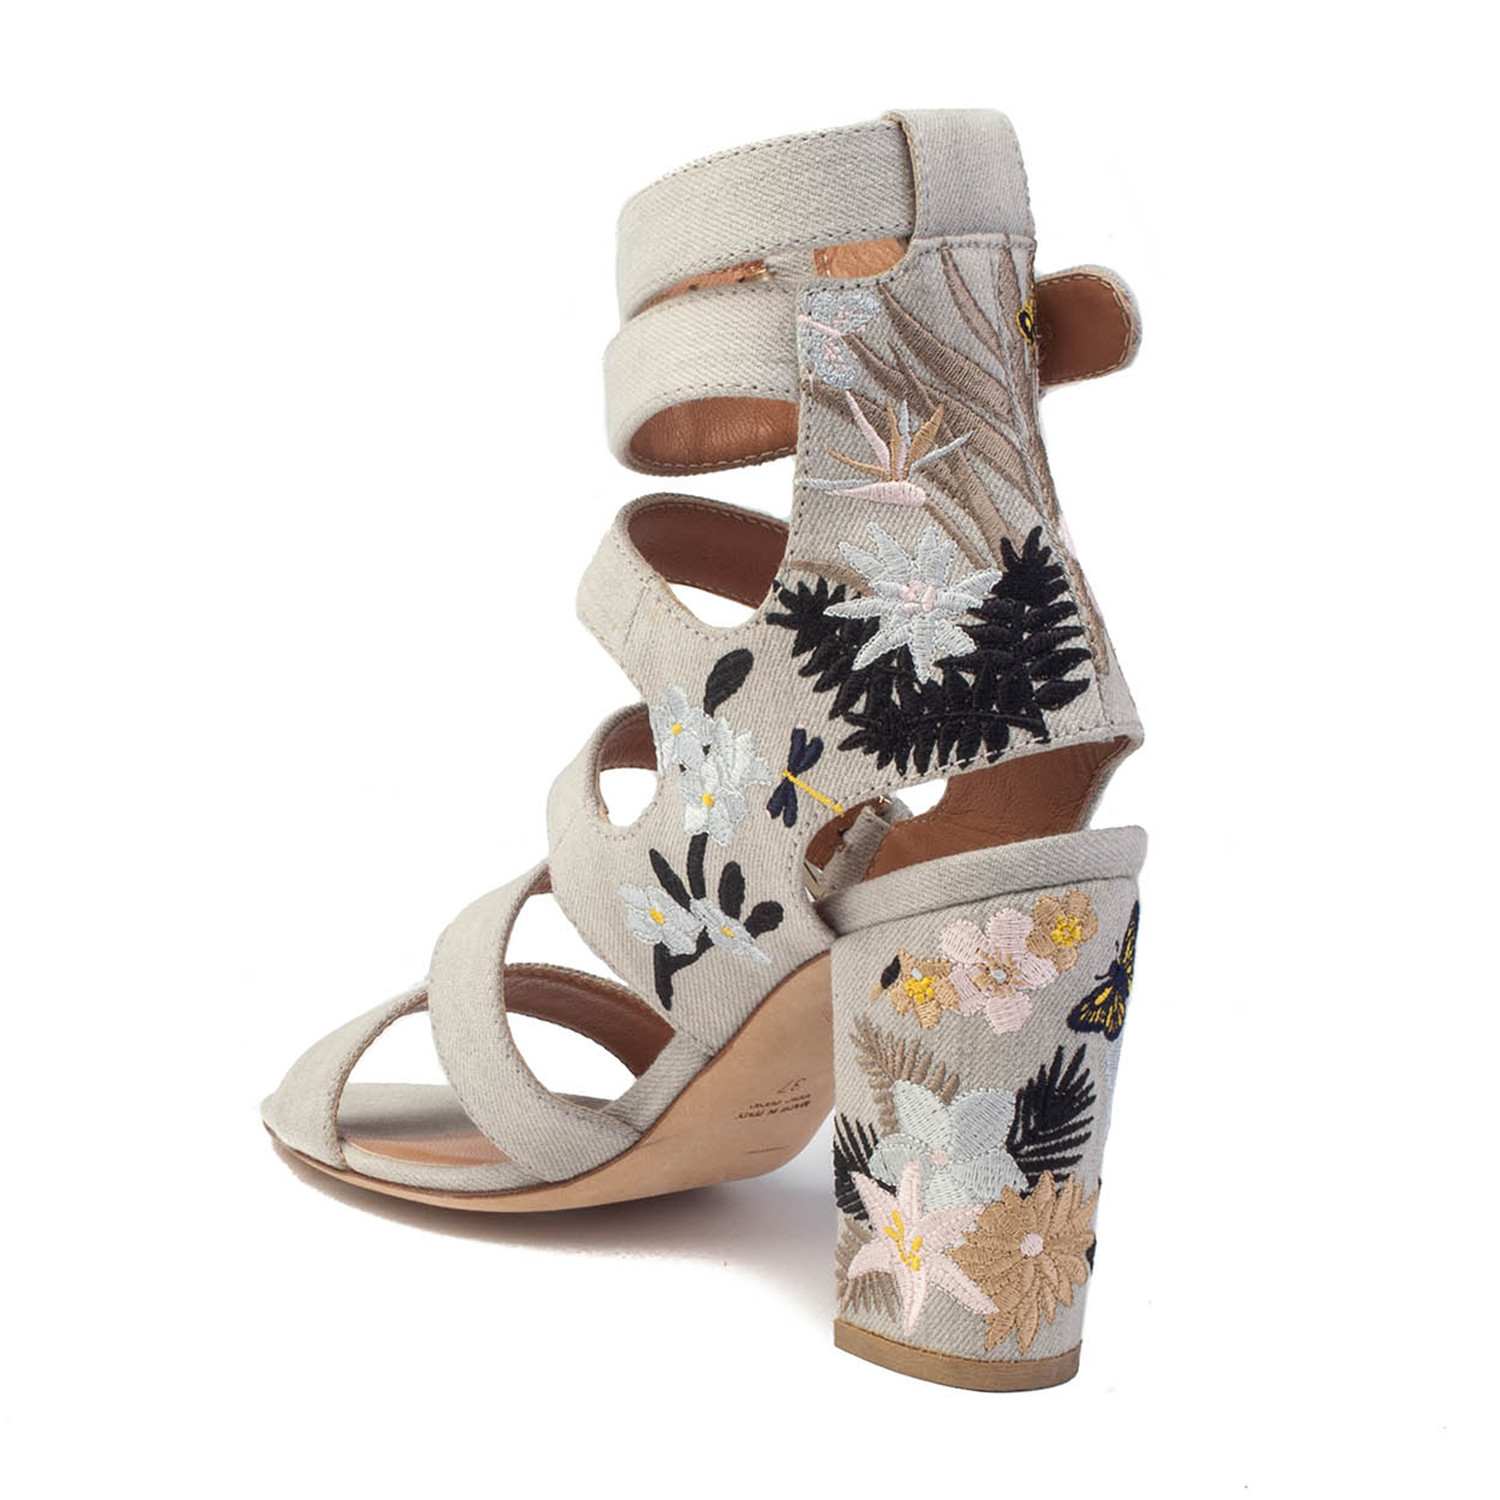 2a9cd155d1e Laurence Dacade    Dana Tropicale Embroidered Block Heel    Grey (US  6.5